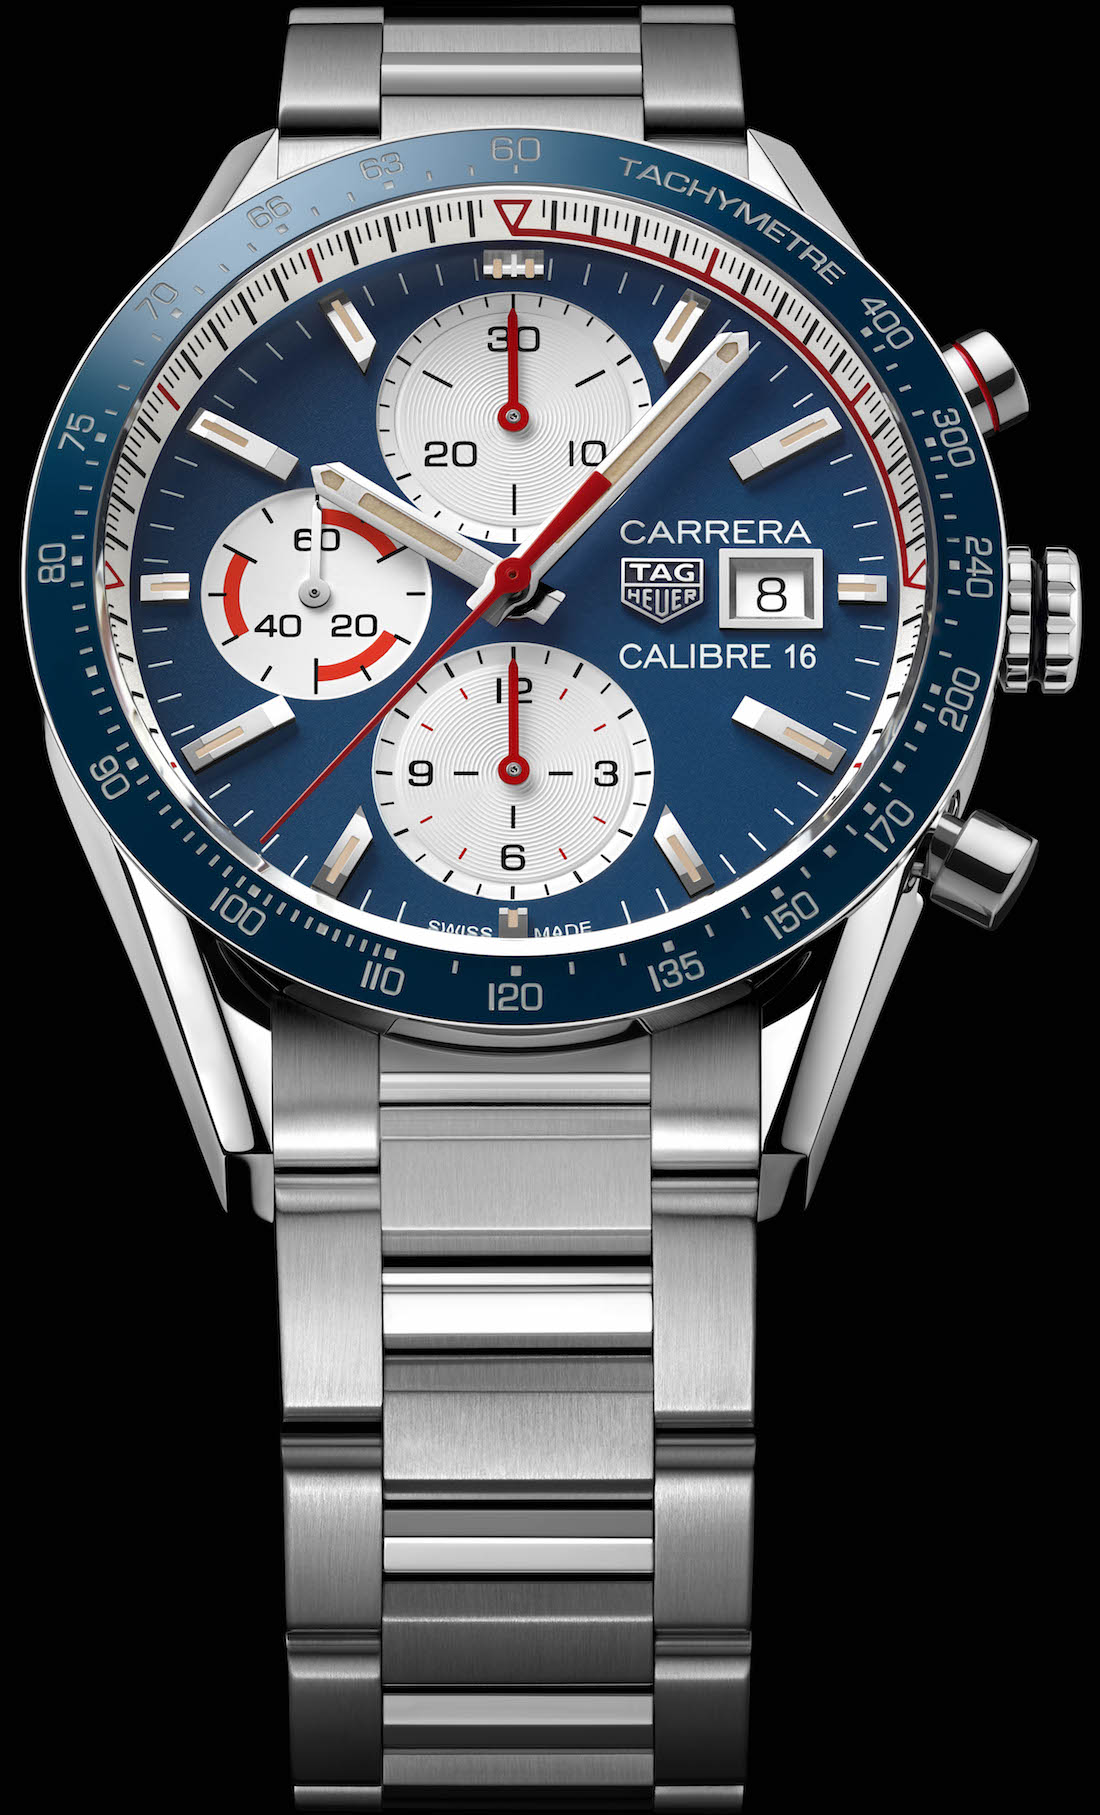 8903f9530334 Vintage-inspired watches continue to be popular and the new Carrera Calibre  16 Chronograph watches are a rather tasteful attempt by Tag Heuer Replica  ...